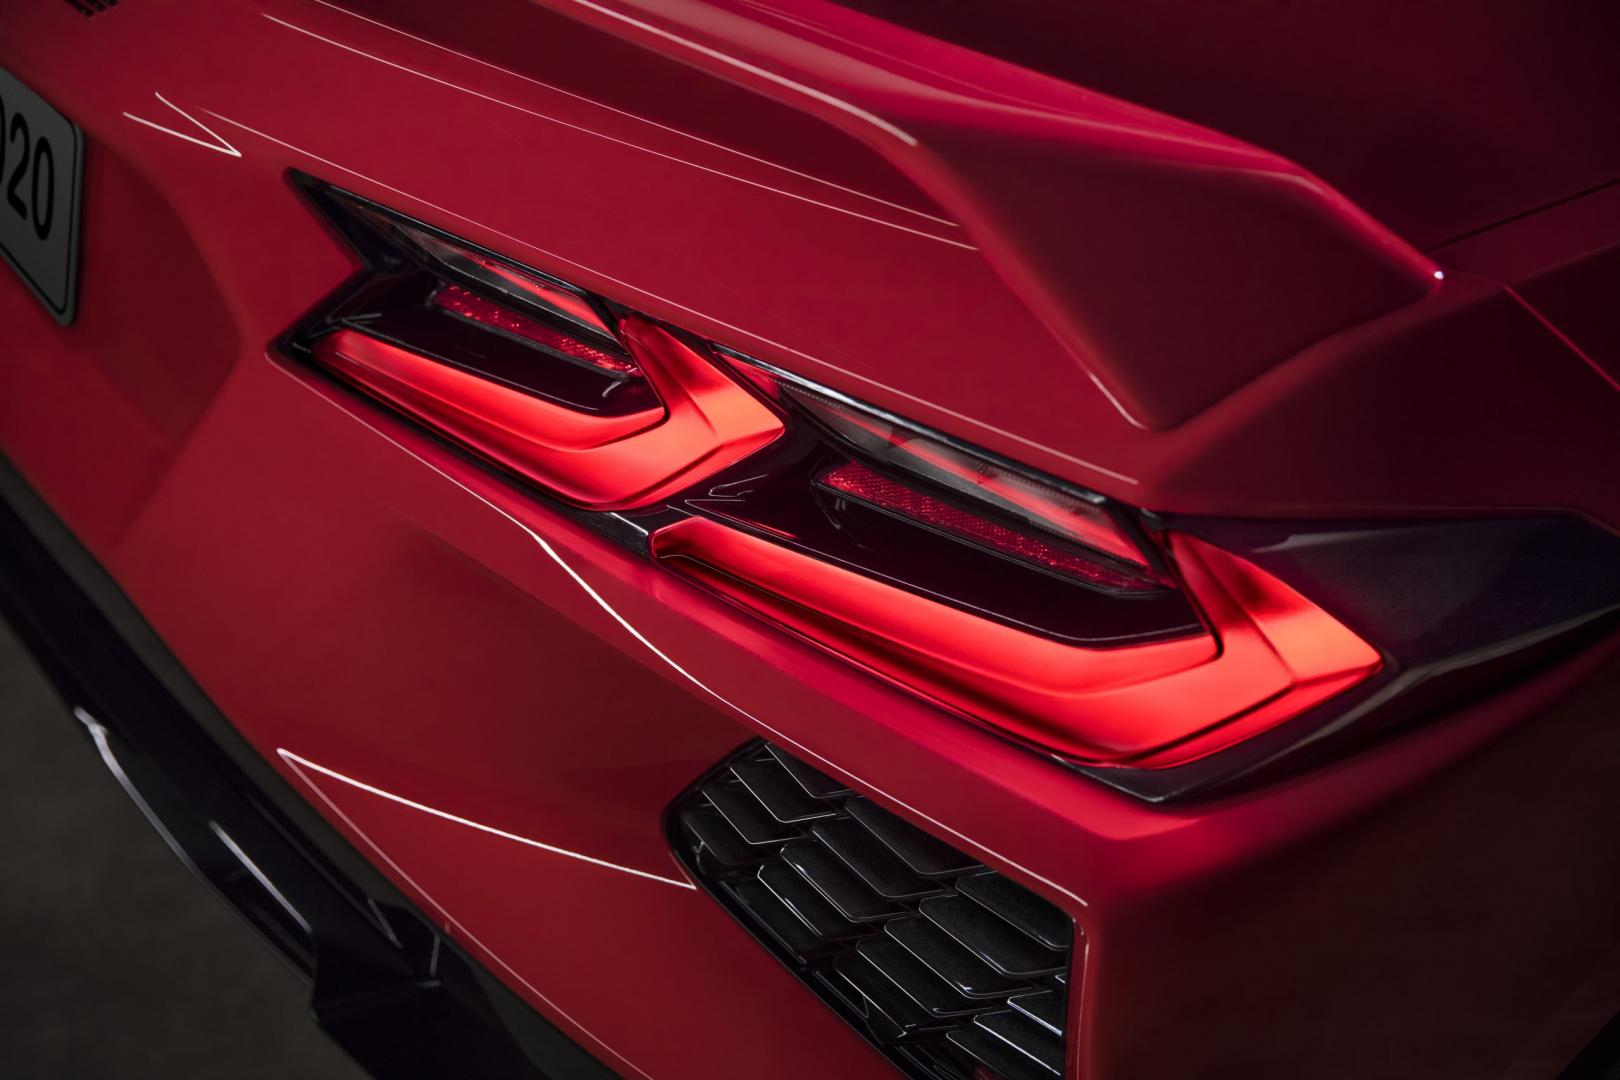 2020 Chevrolet Corvette C8 Stingray achterlicht